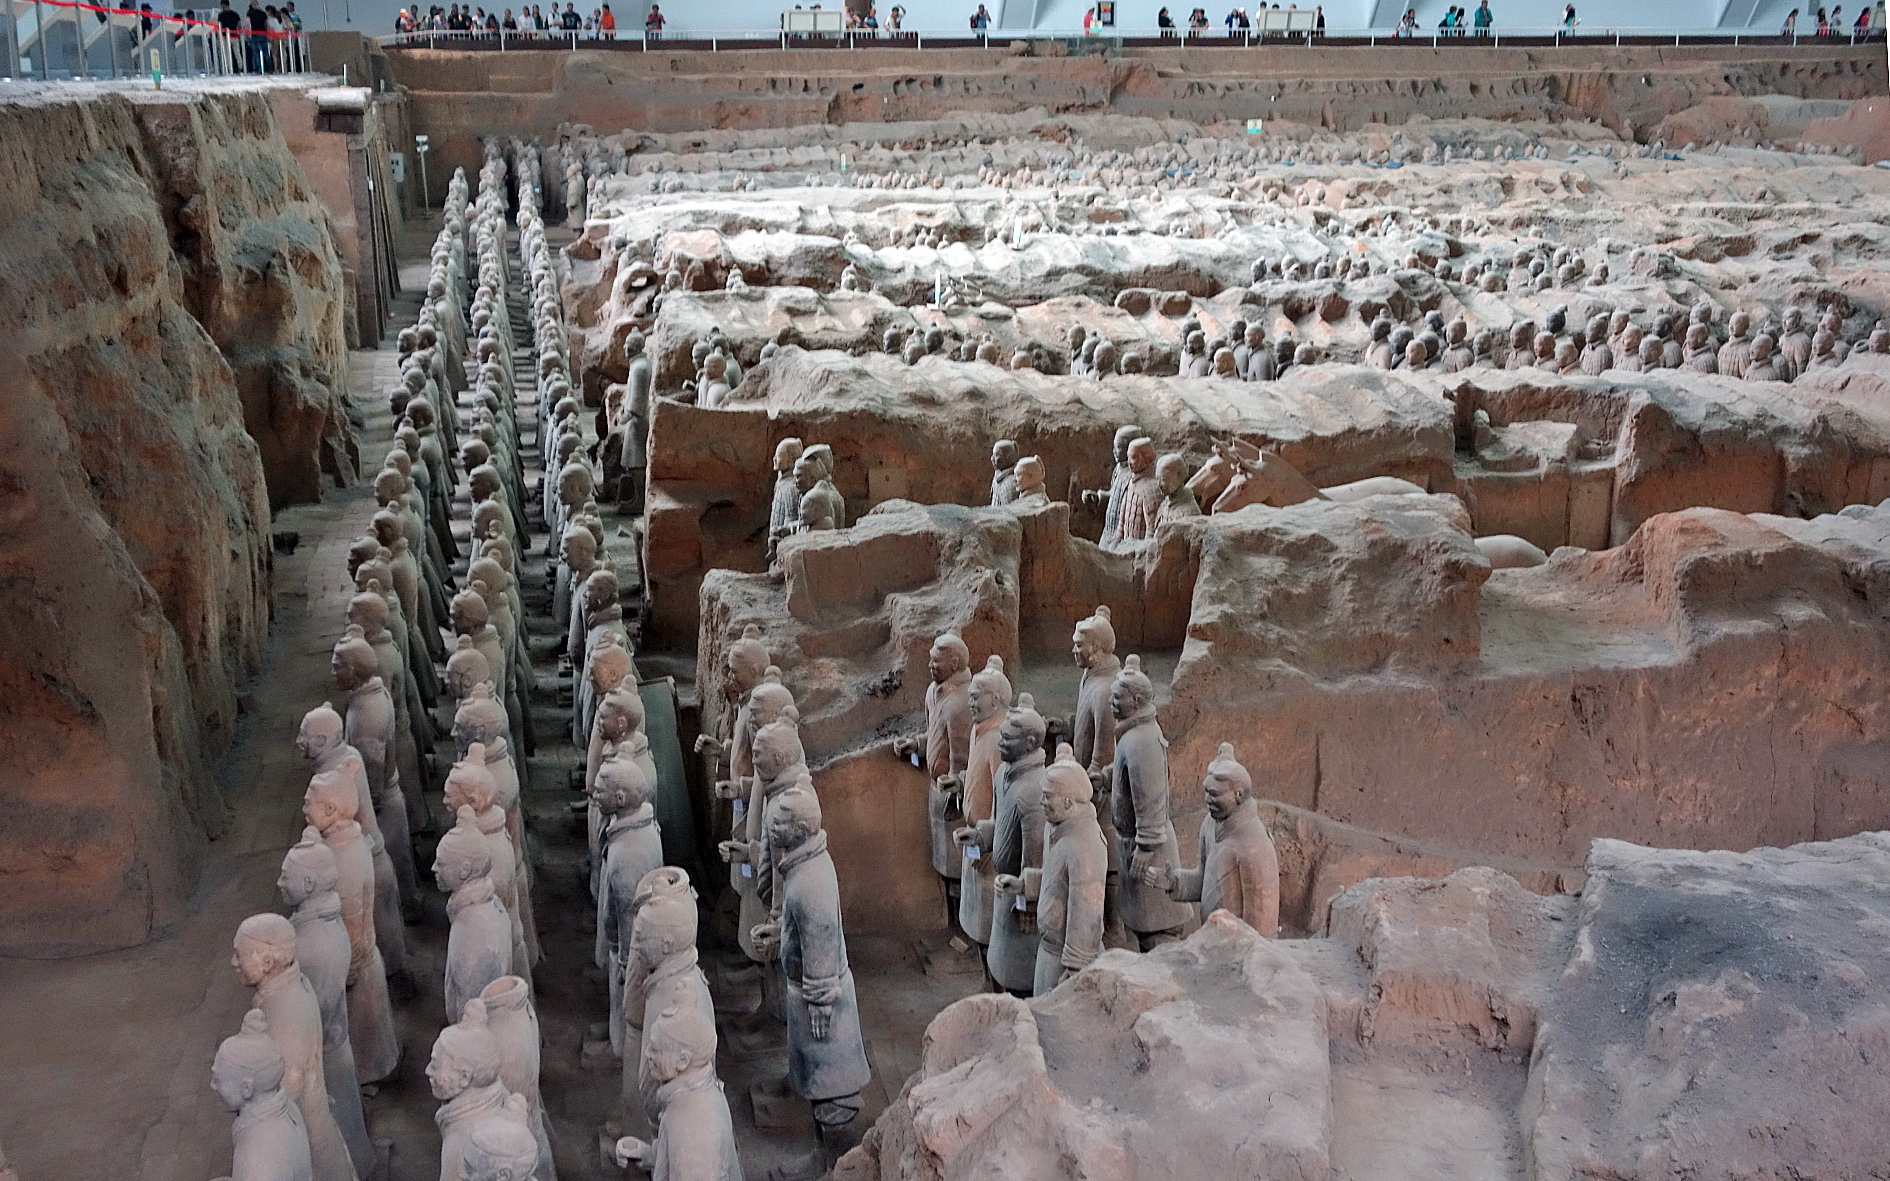 Terracotta army - the vanguard